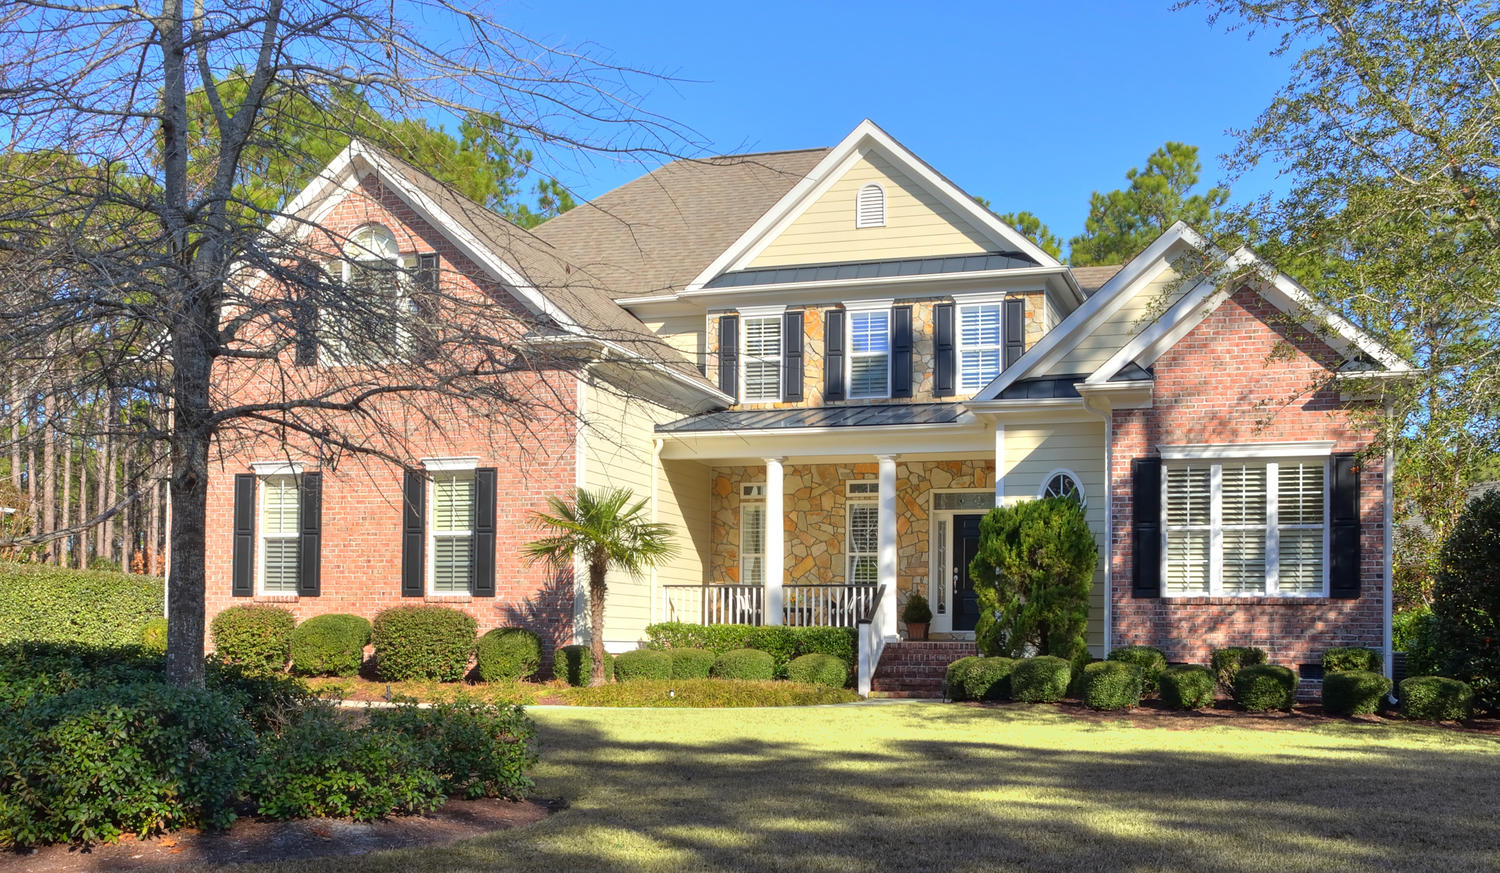 Single Family Home for Sale at Sophisticated Home for the Connoisseurs of Life 3810 Worthington Place Southport, North Carolina 28461 United States